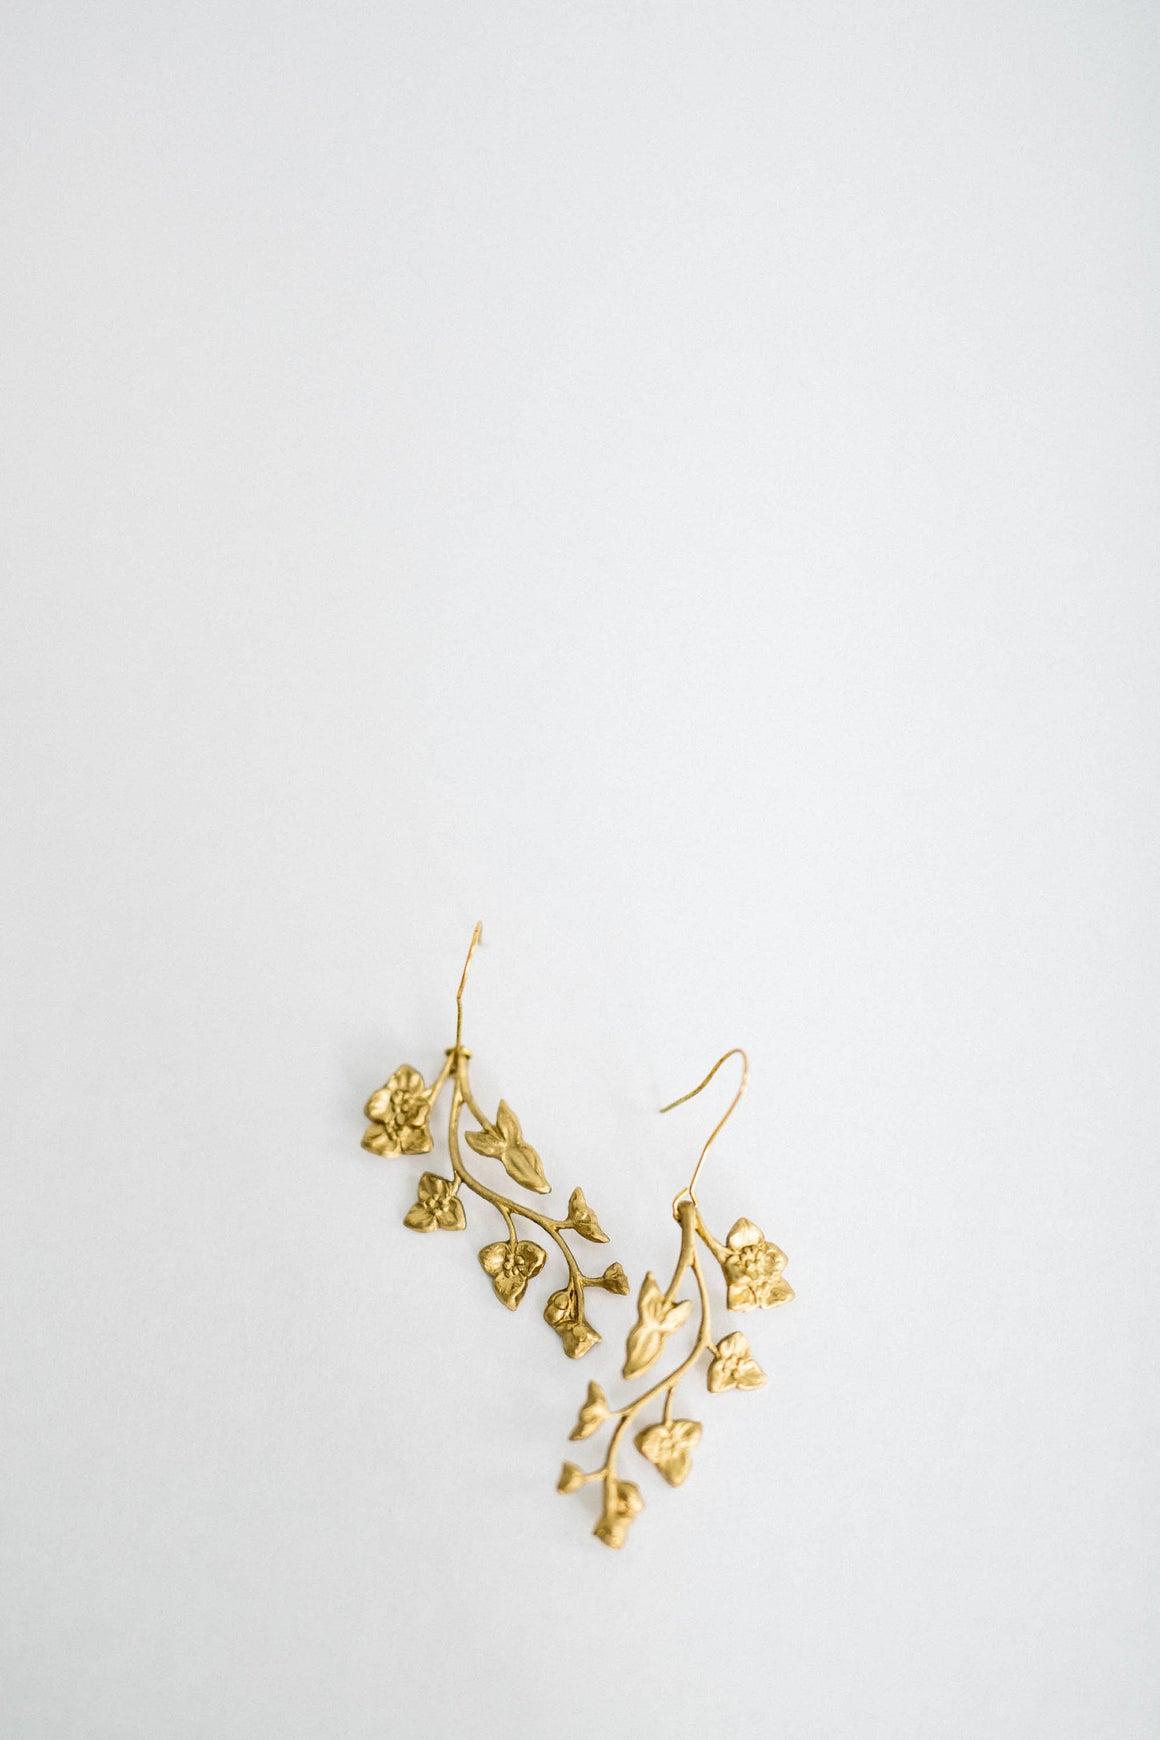 Earrings made of gold leaves and flowers